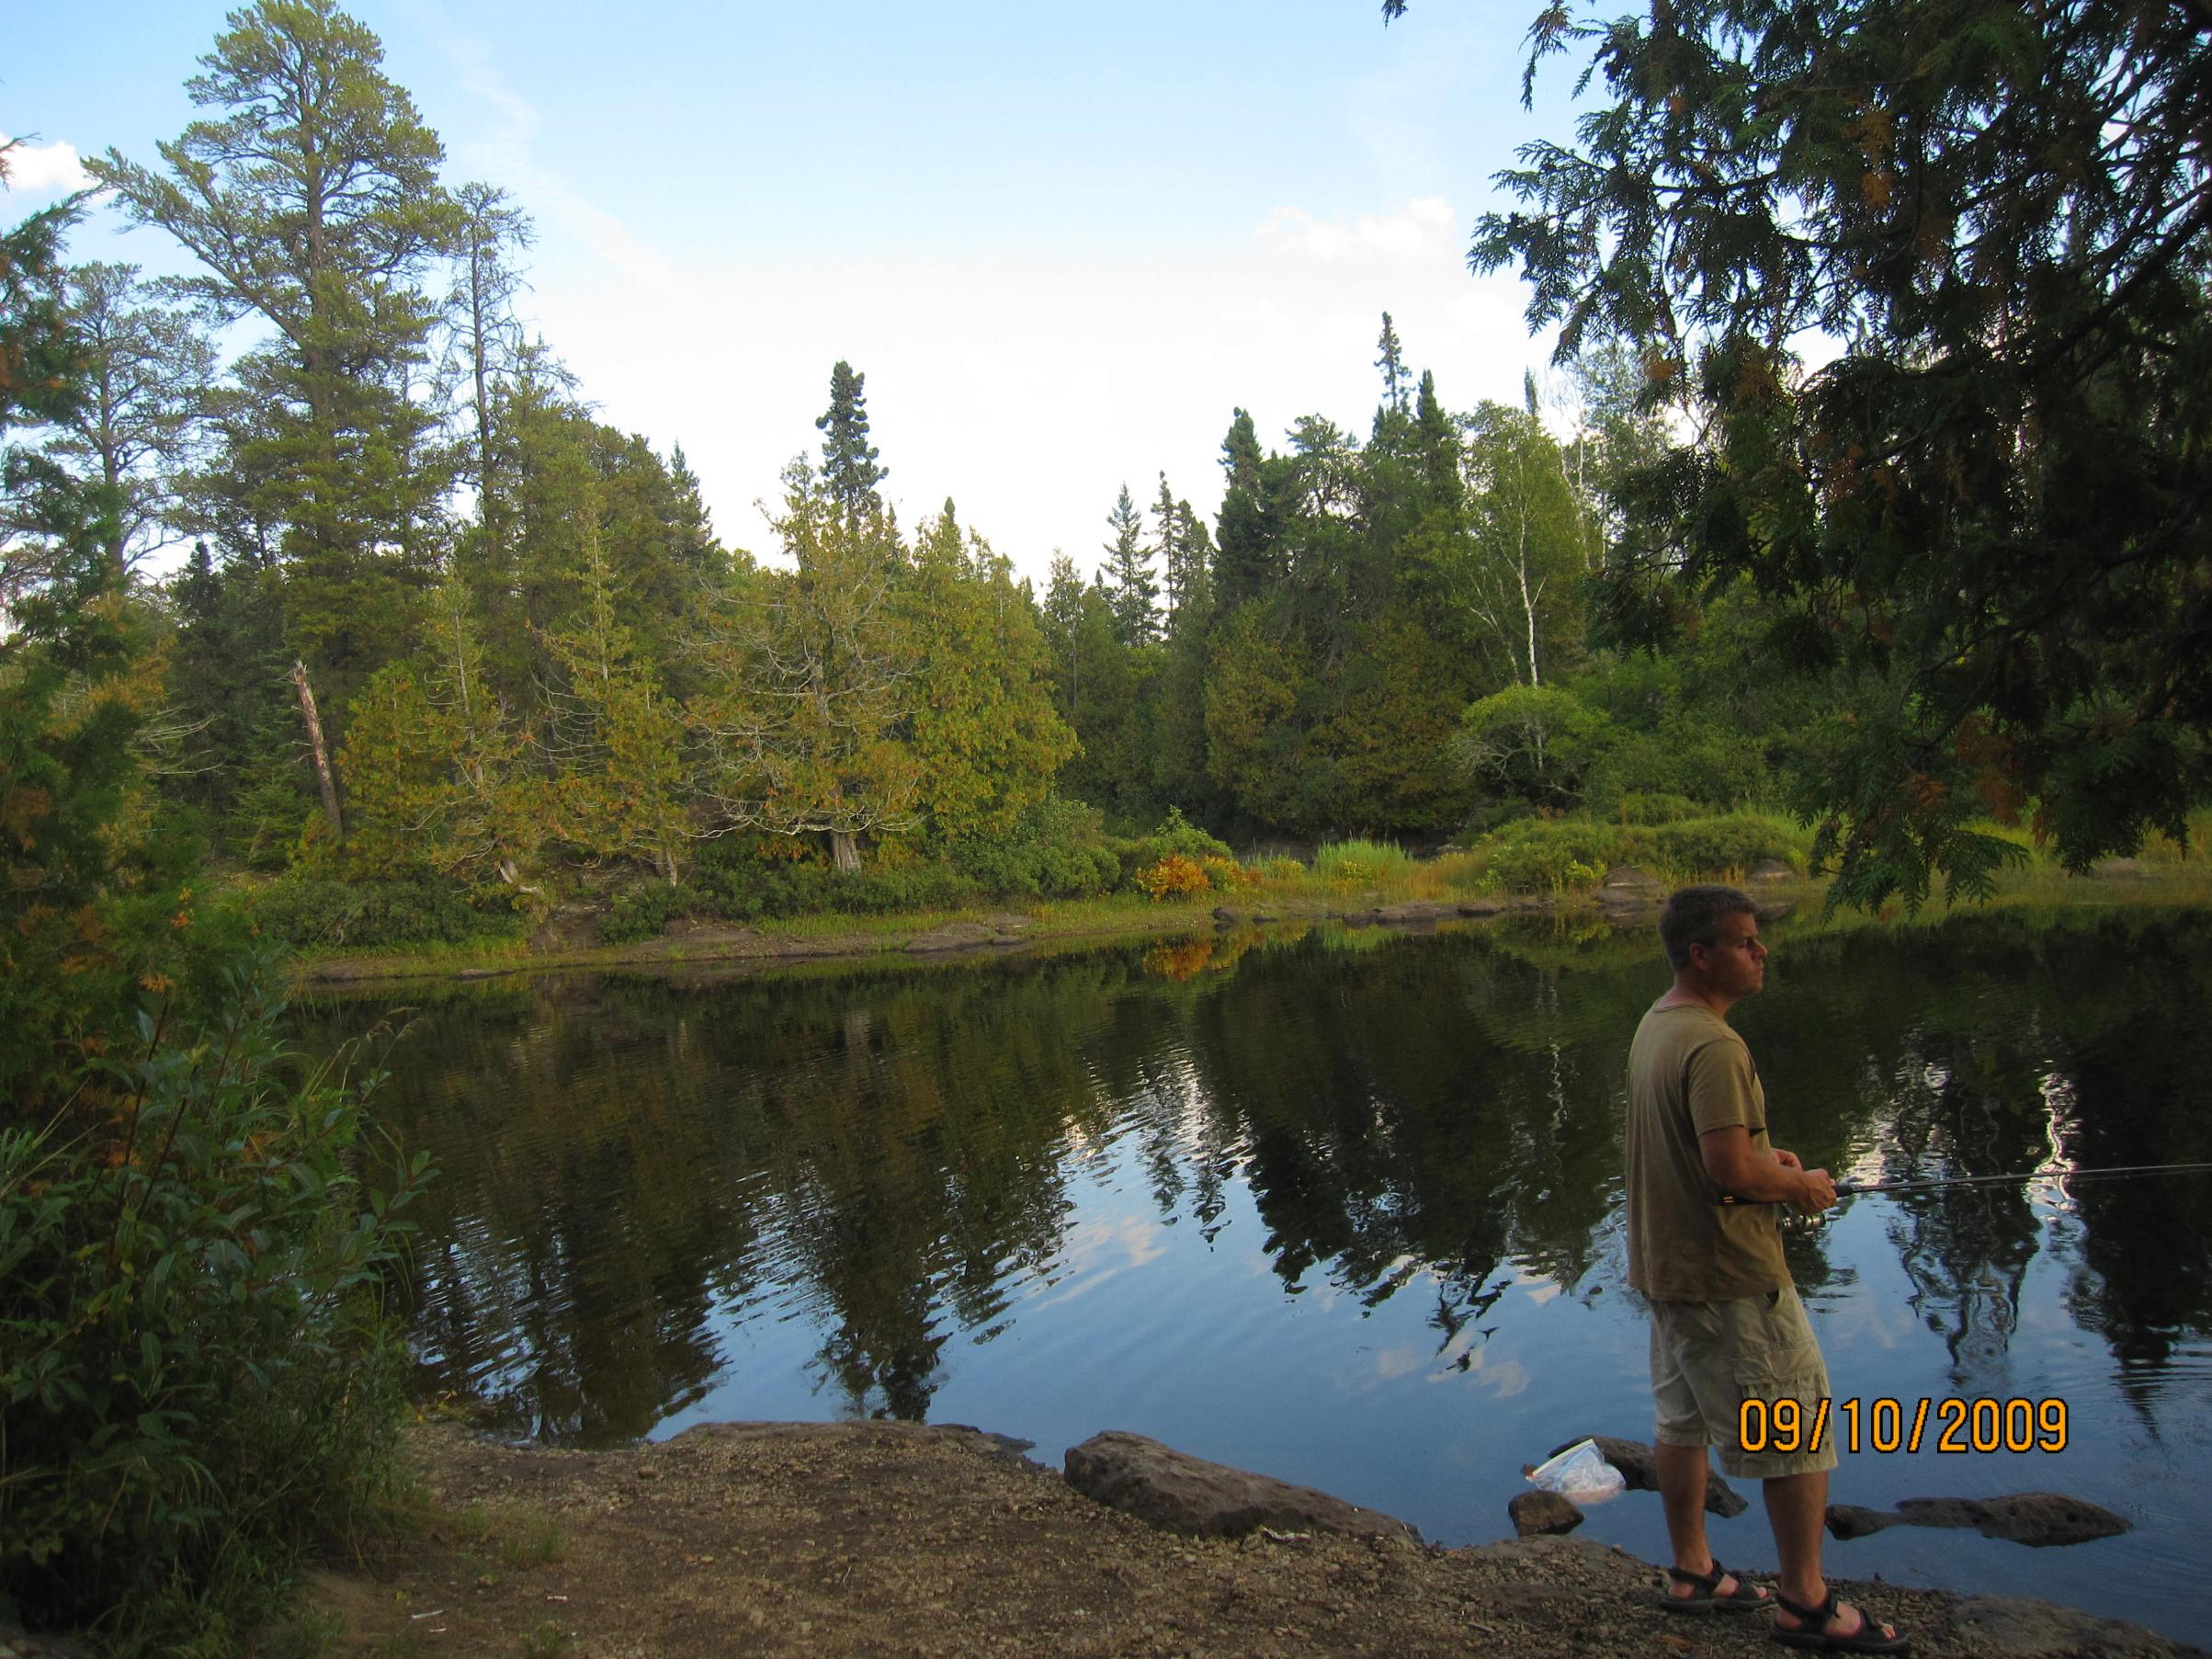 Fishing on Malberg campsite